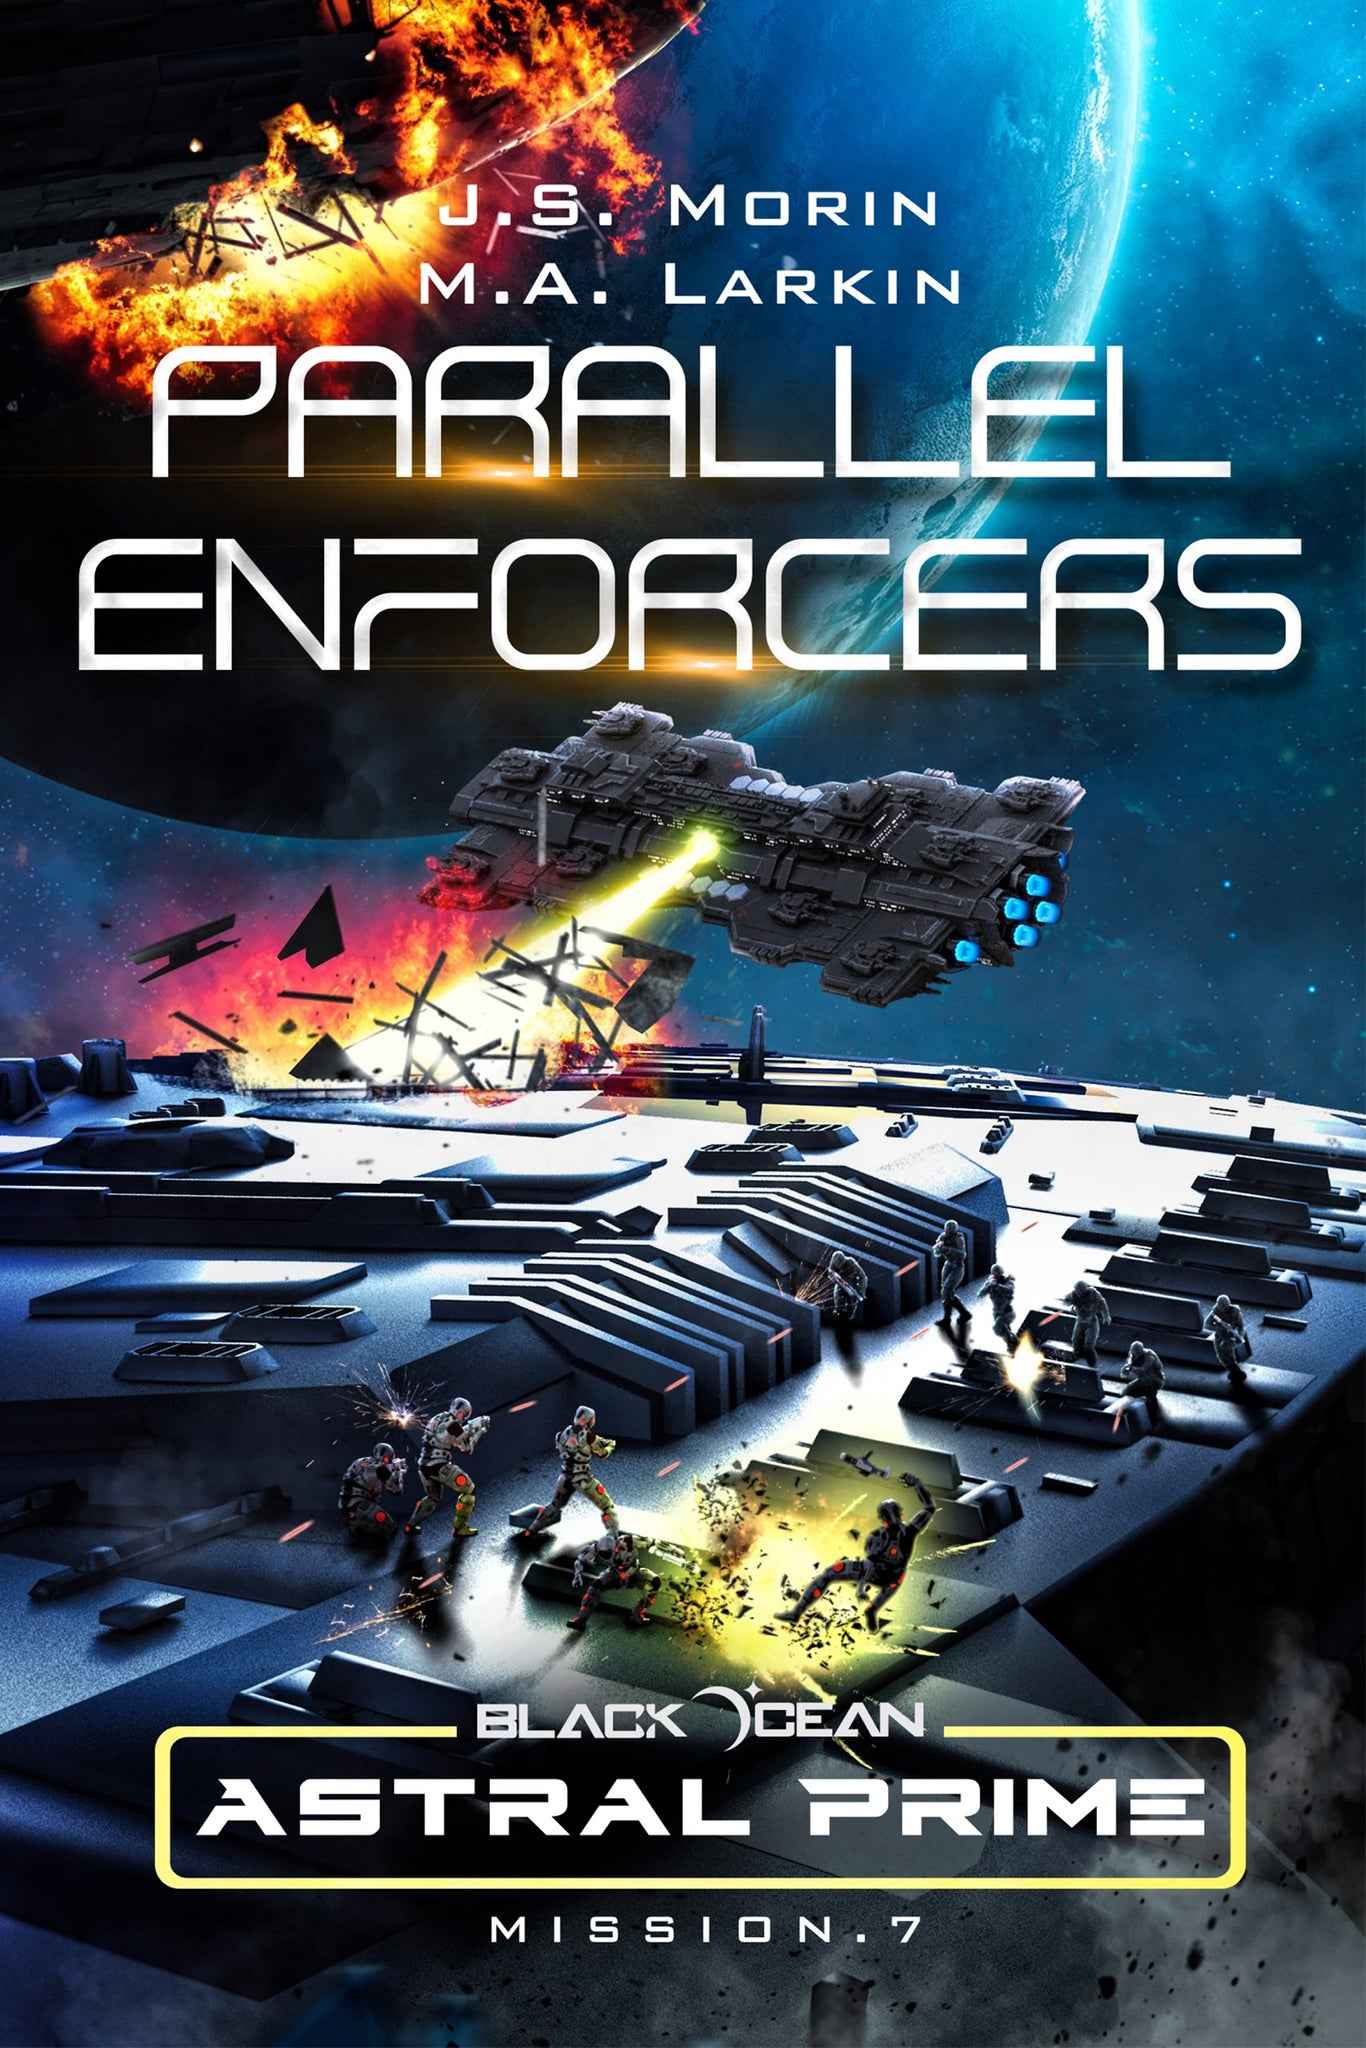 Parallel Enforcers, Black Ocean: Astral Prime Mission 7